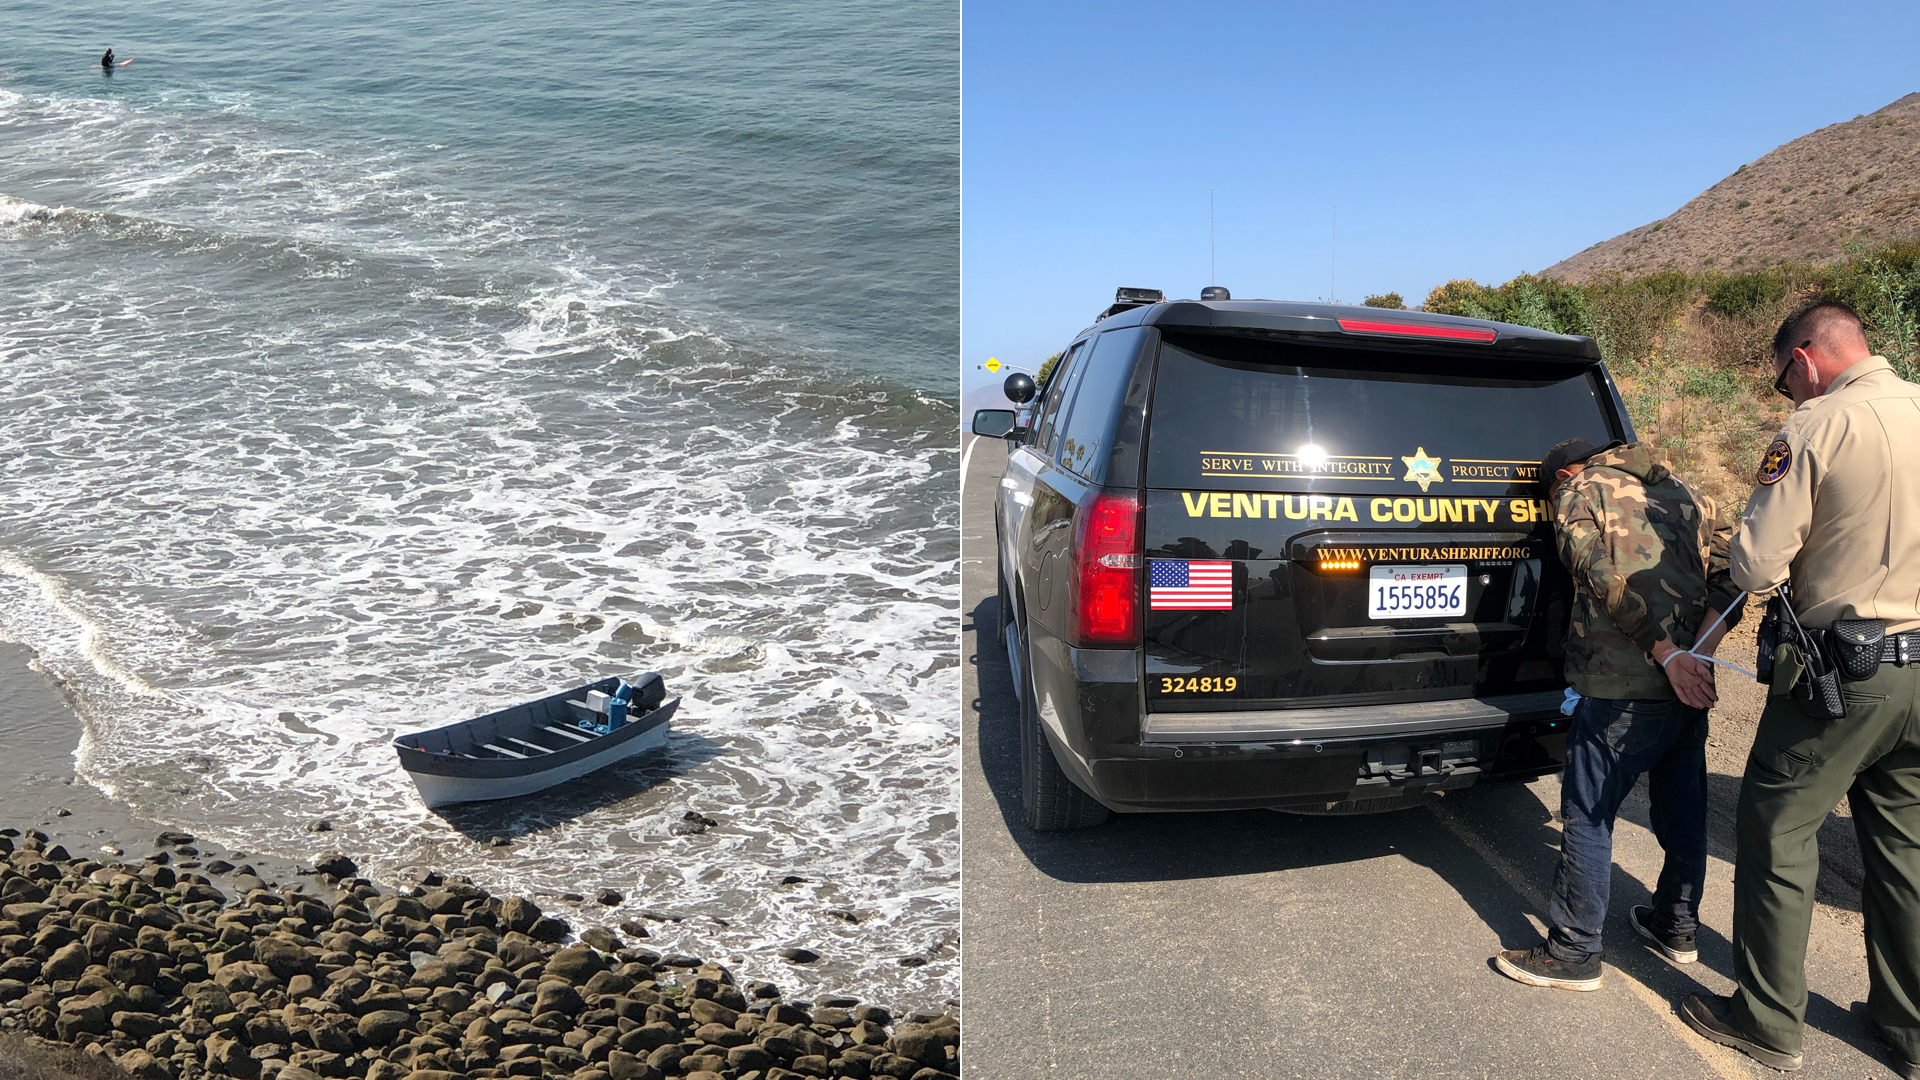 The panga boat and one person who was detained are shown in photos provided by the Ventura County Sheriff's Office on Aug. 12, 2021.